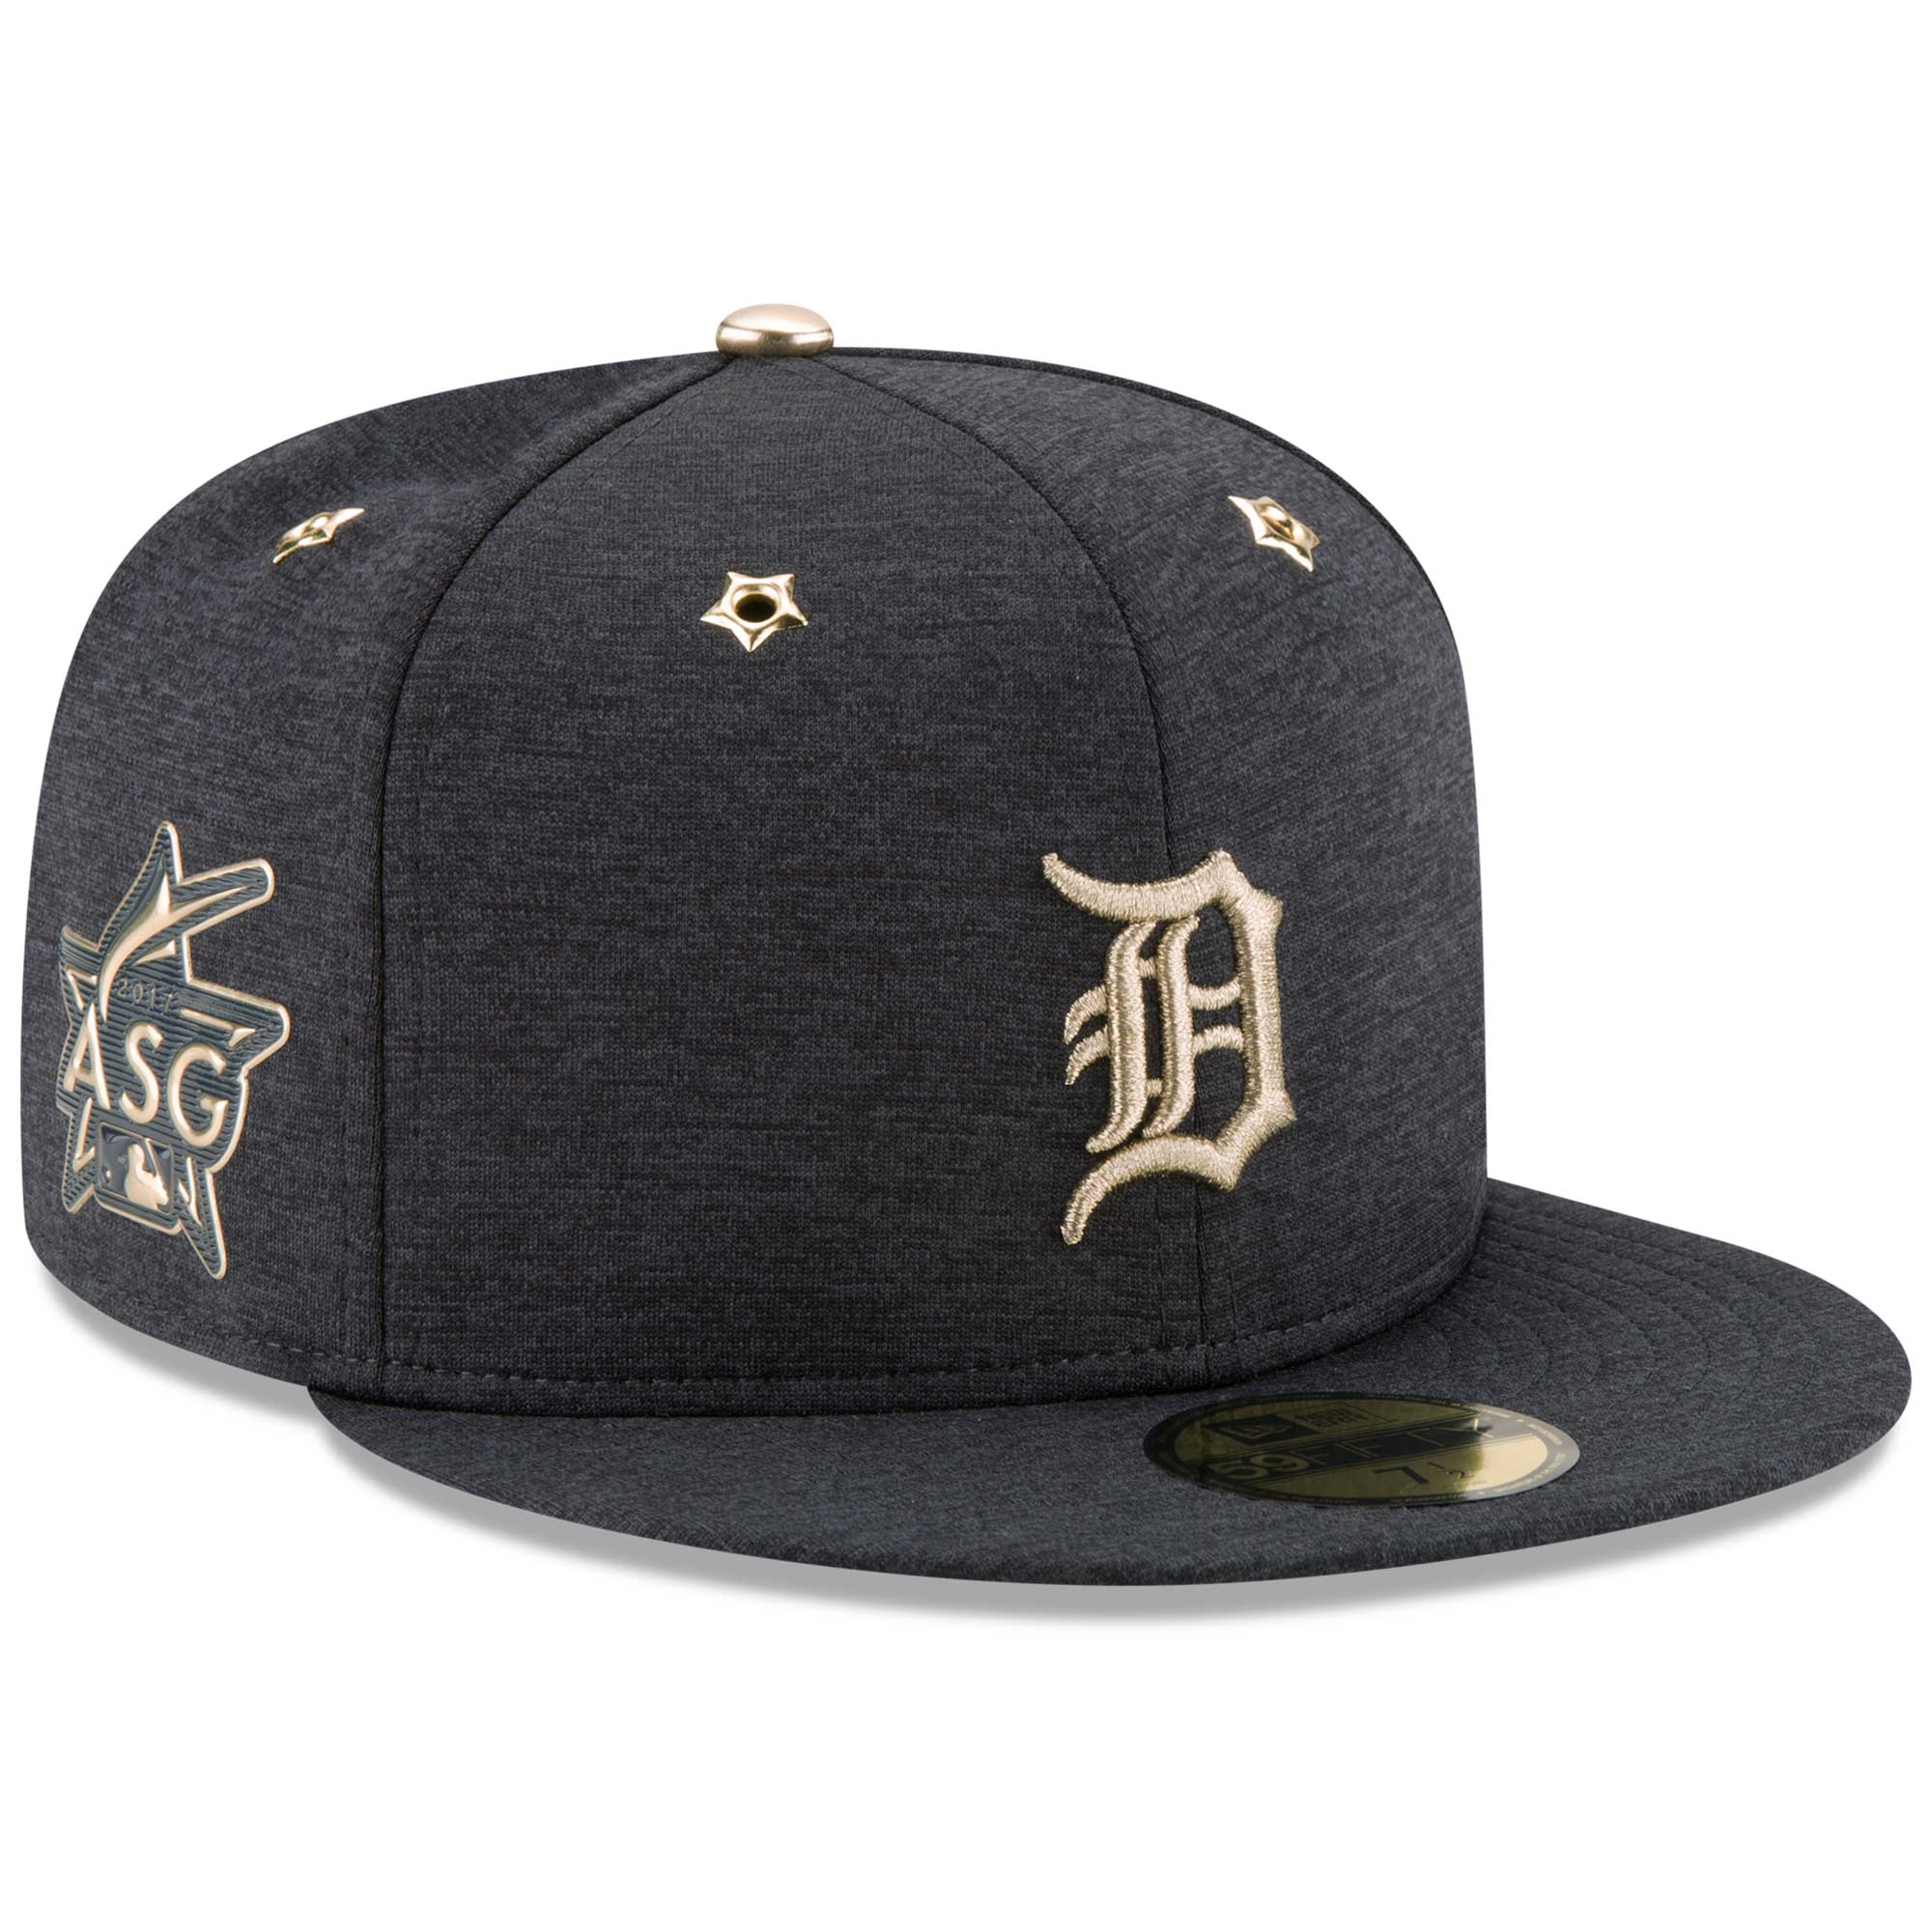 buy online 0cf49 f2e8d ... buy detroit tigers new era 2017 mlb all star game side patch 59fifty  fitted hat heathered